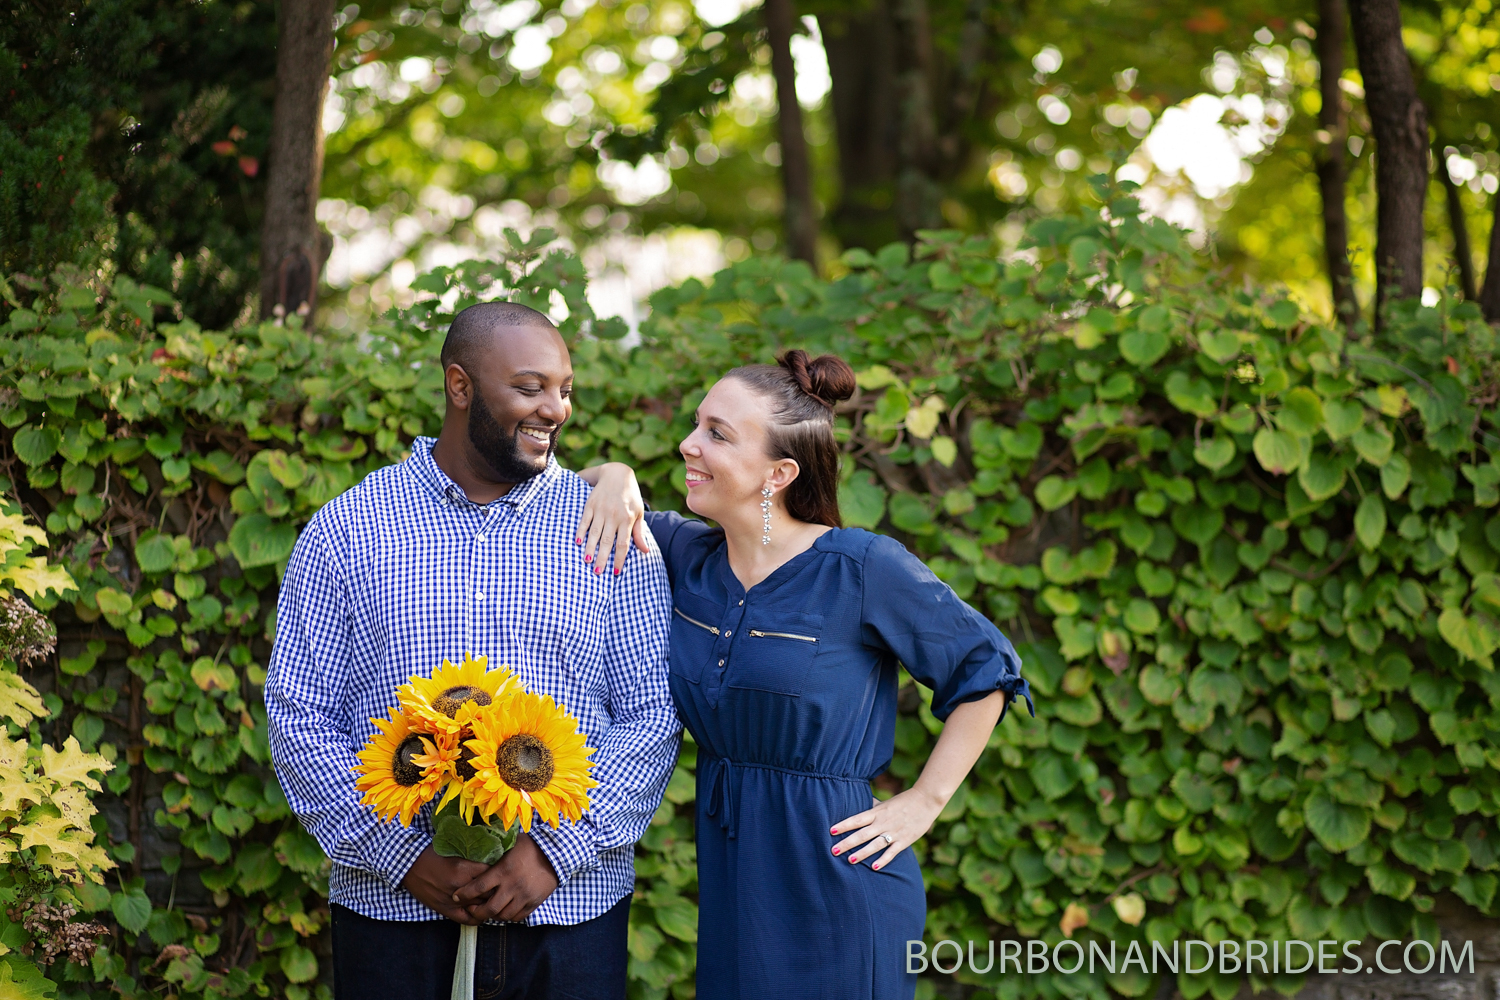 yew-dell-engagement-sunflower-louisville.jpg